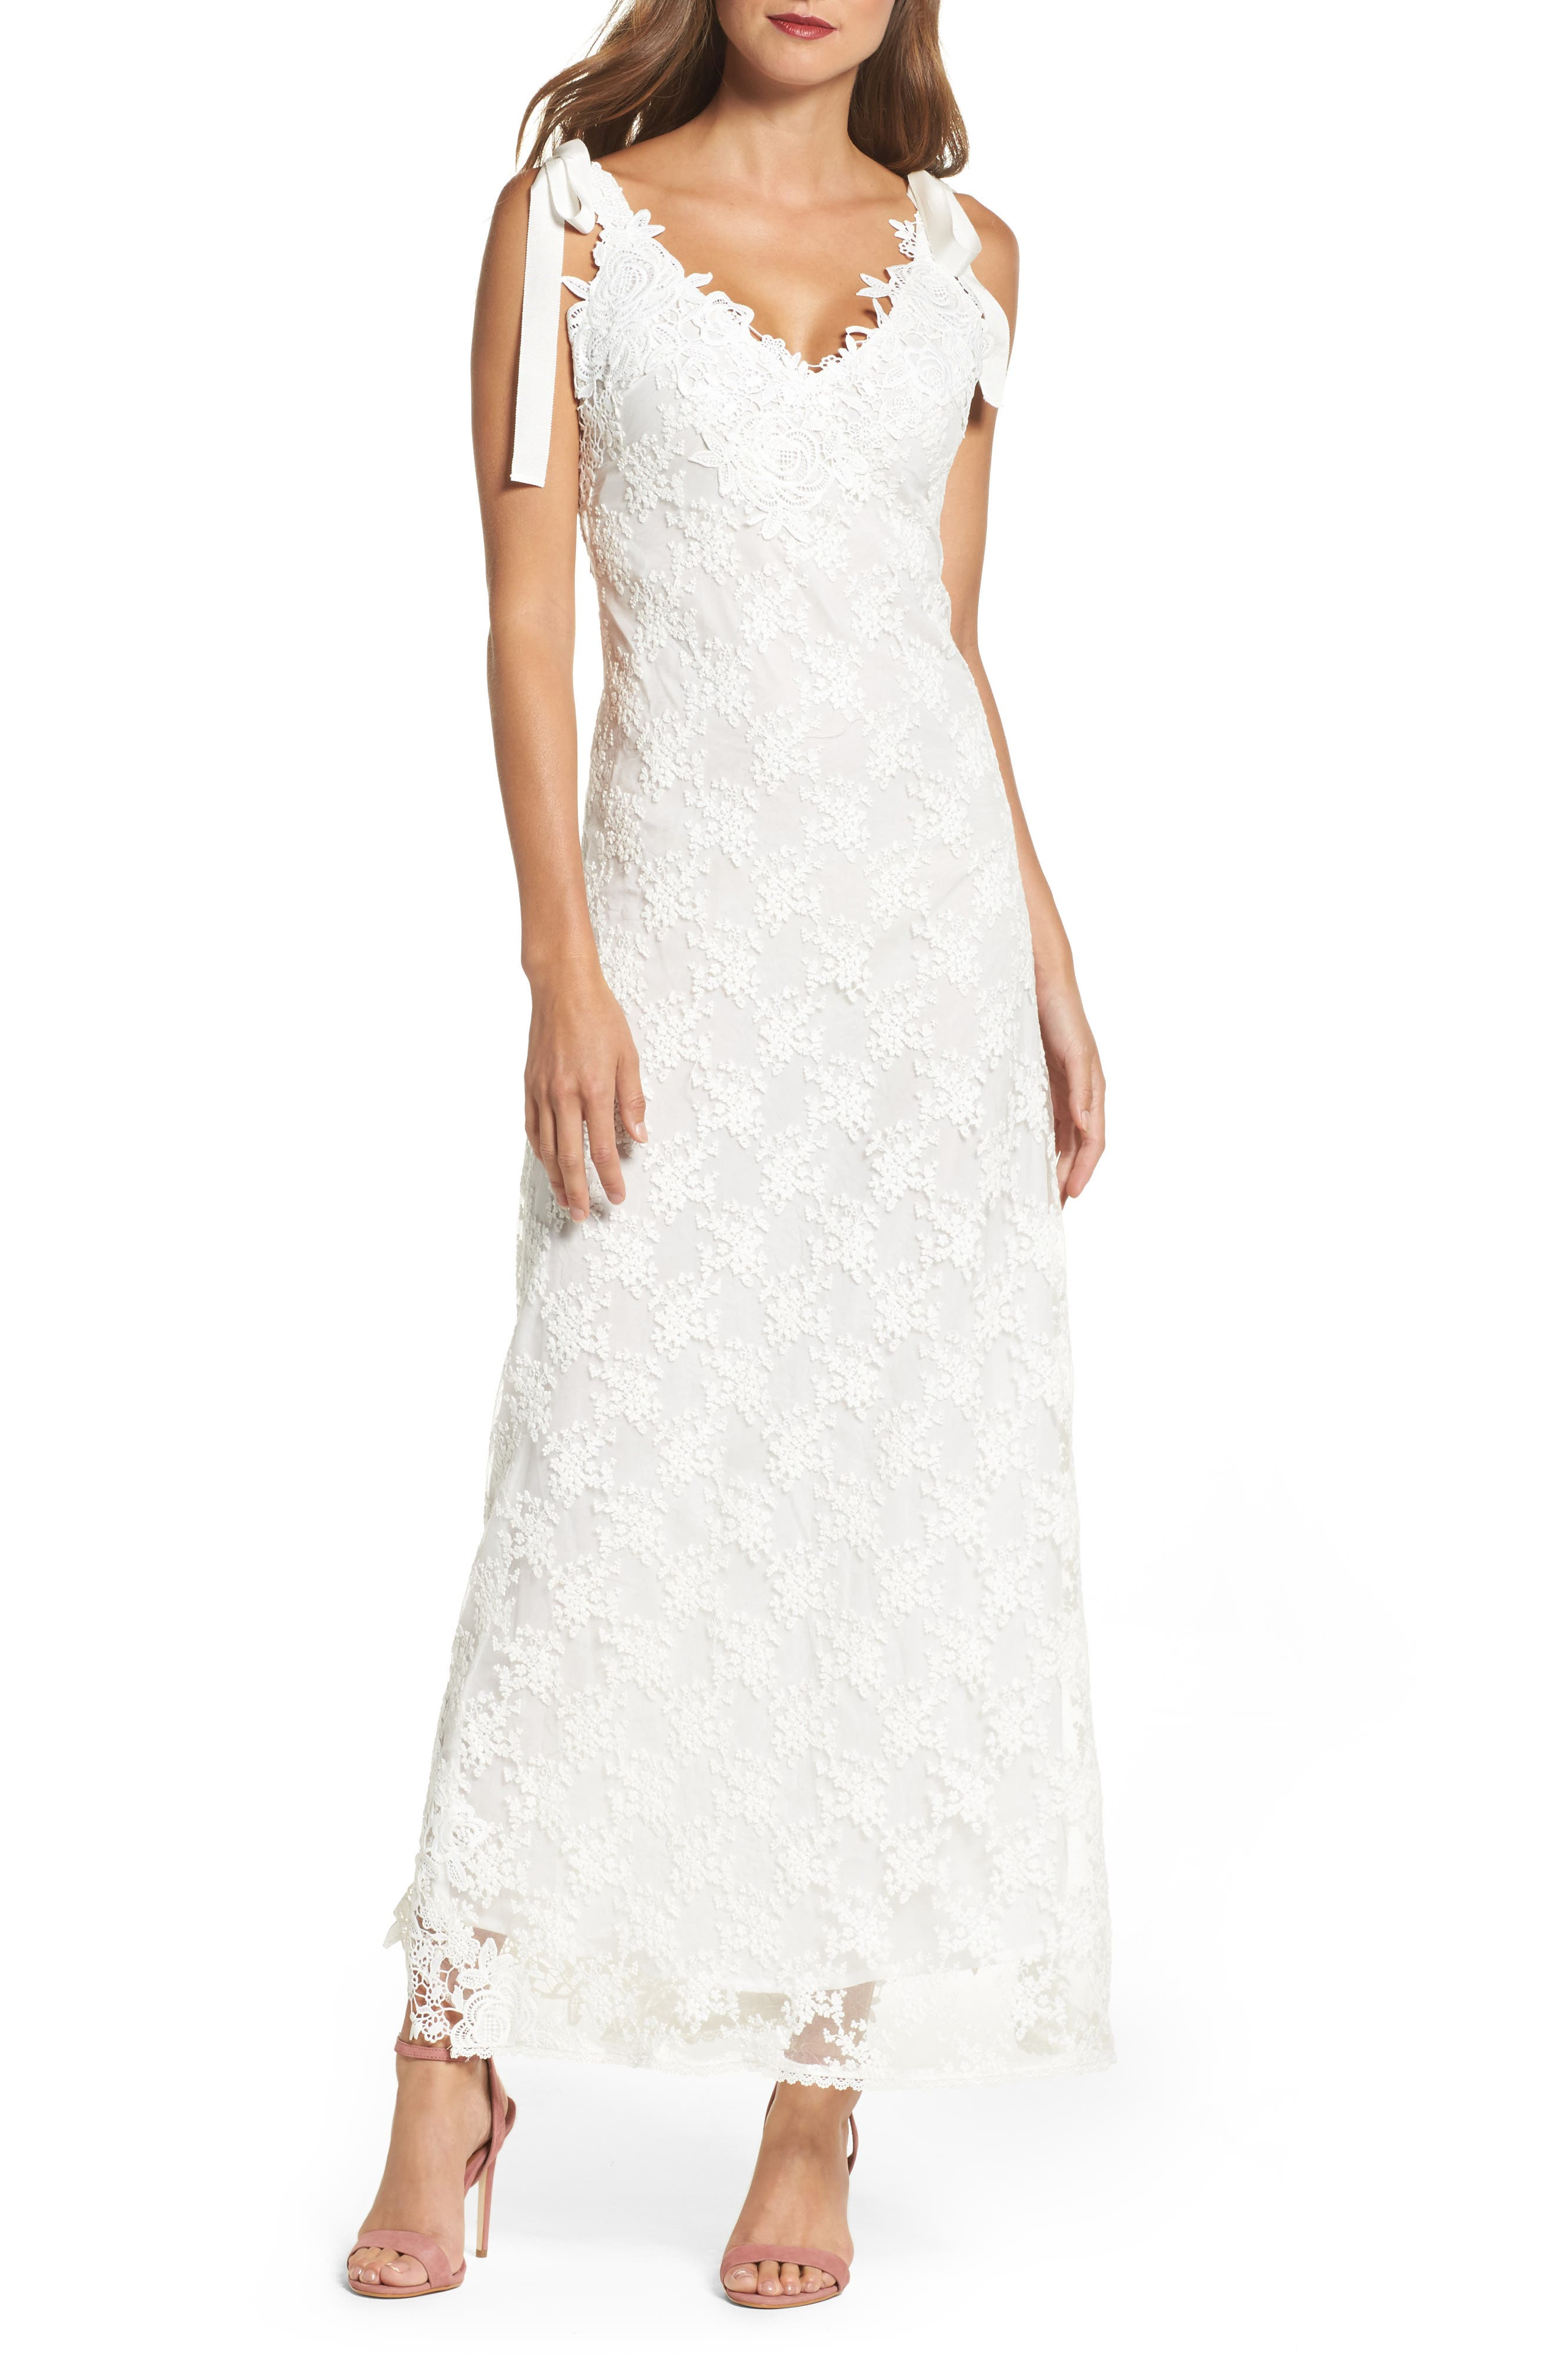 Main Image - Foxiedox August Shoulder Tie Lace Maxi Dress